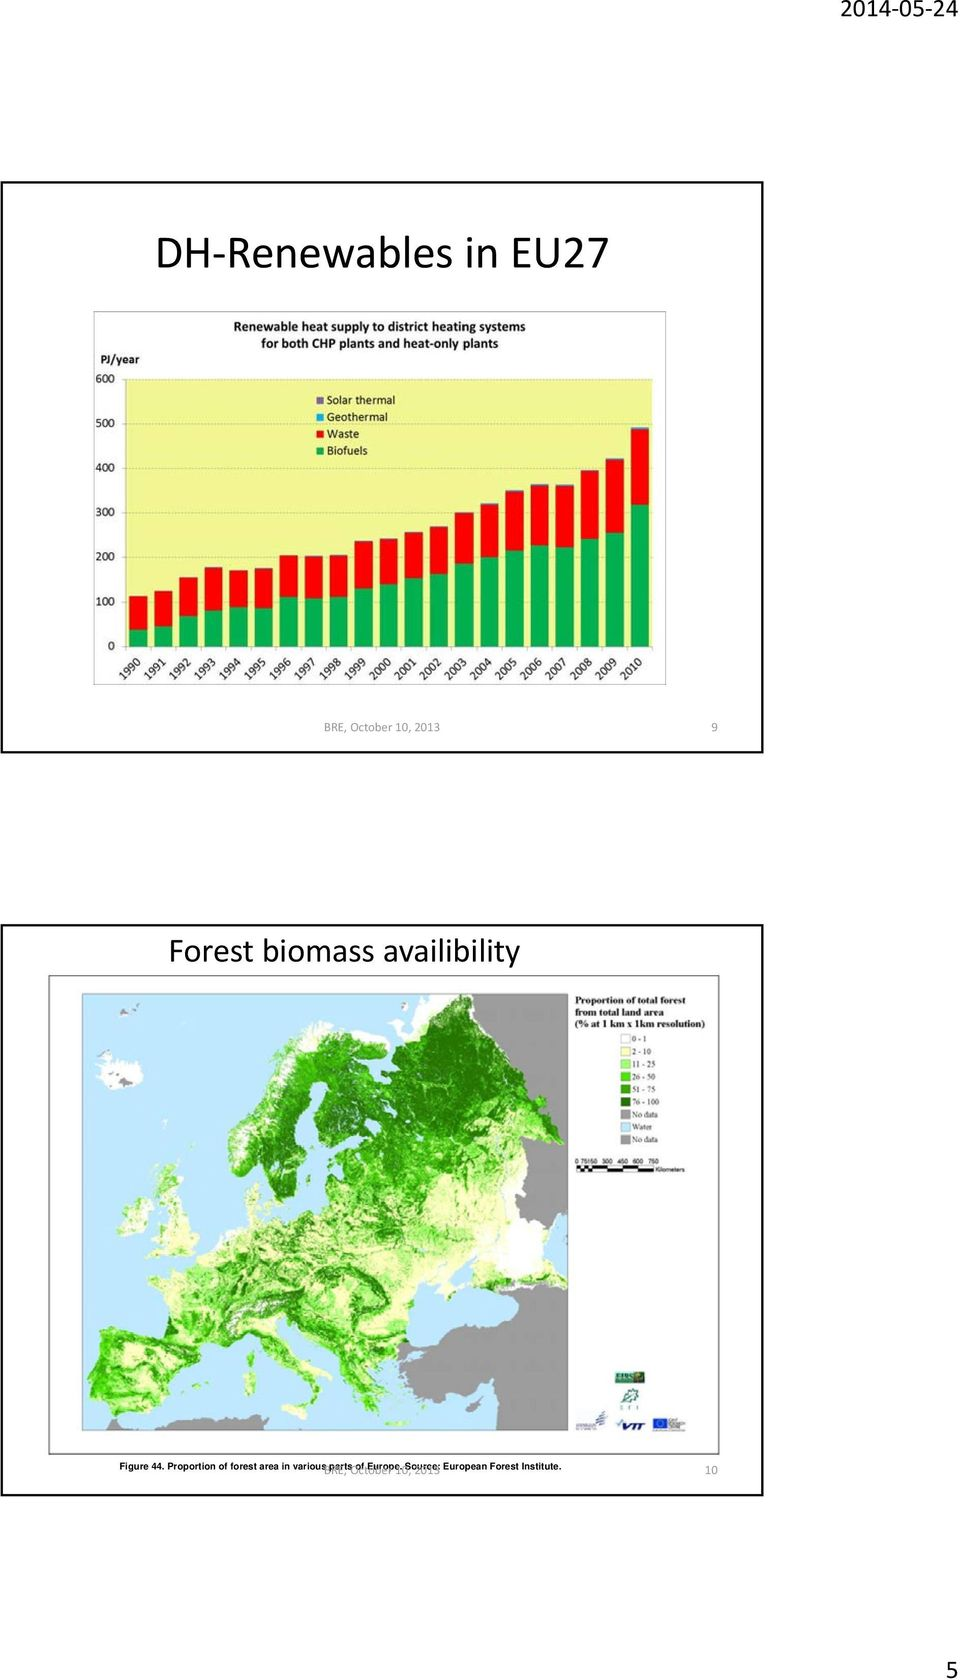 Proportion of forest area in variousbre,